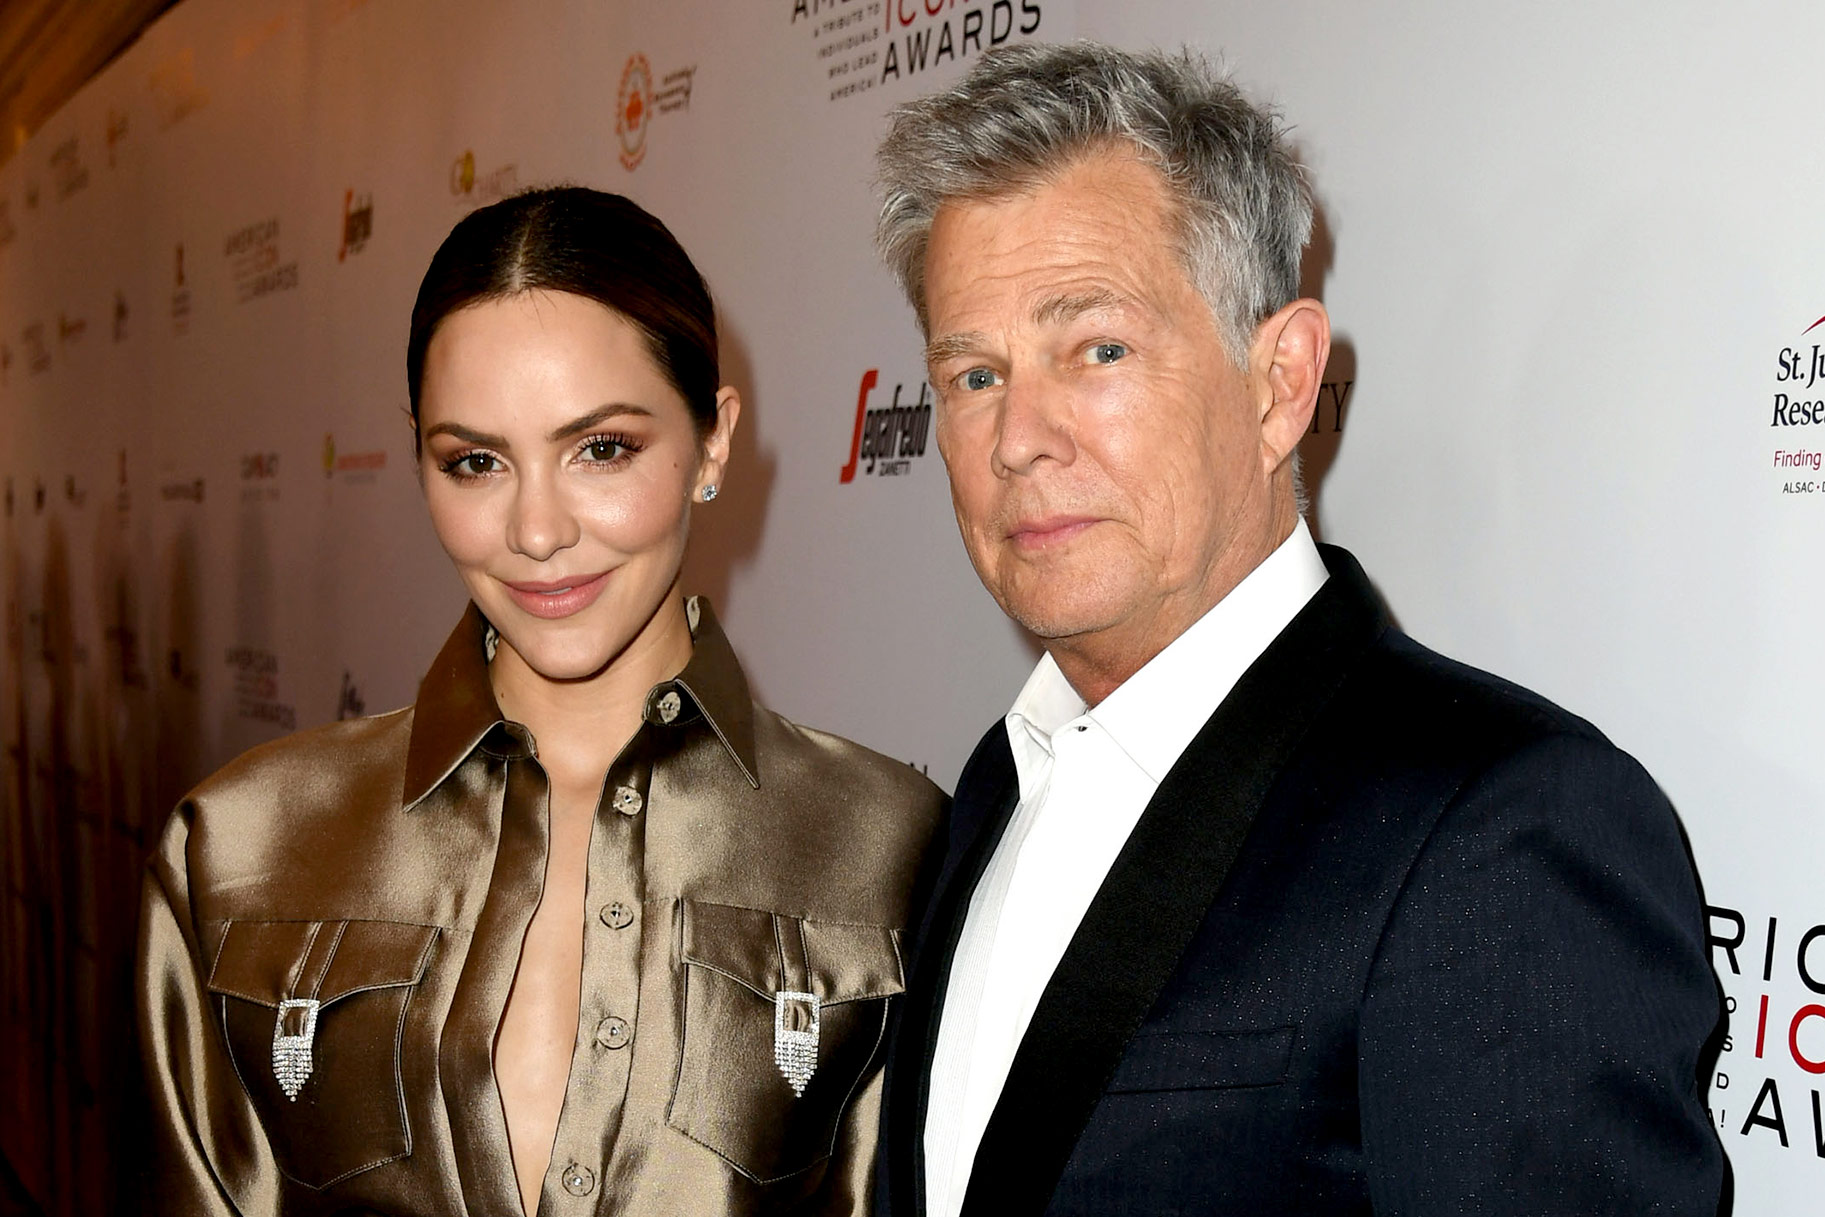 David Foster, Katharine McPhee already married?